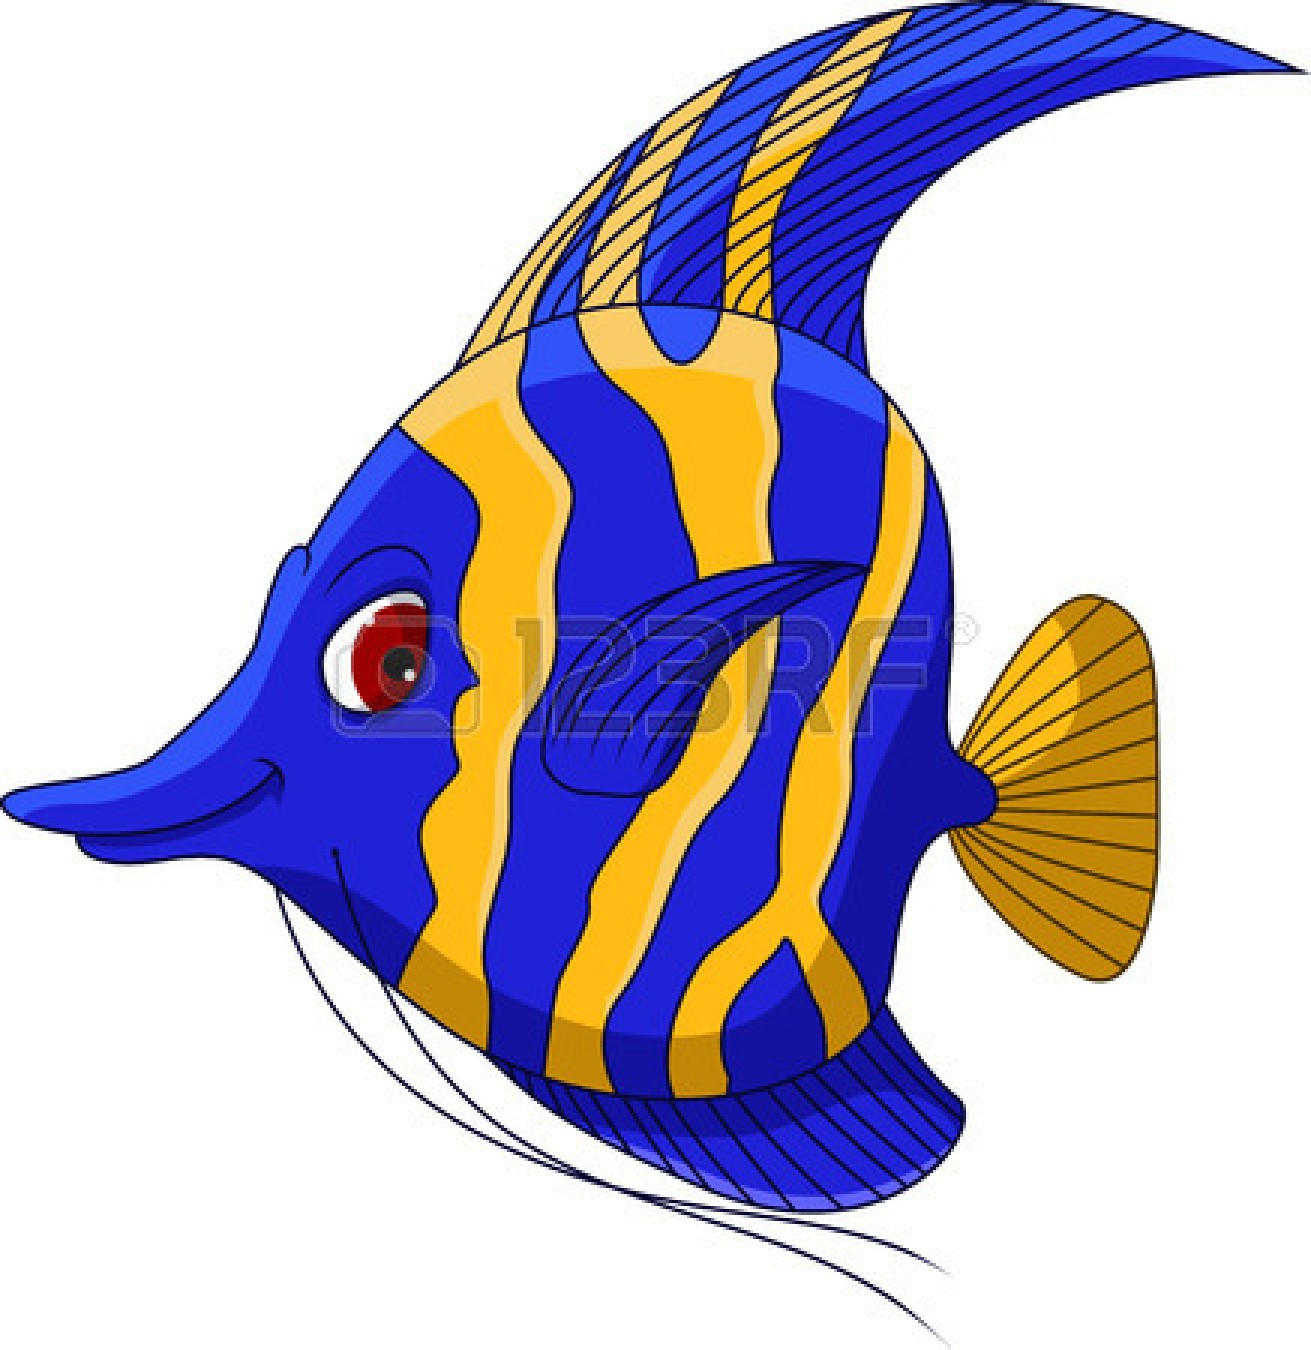 Angelfish clipart 20 free Cliparts | Download images on ...